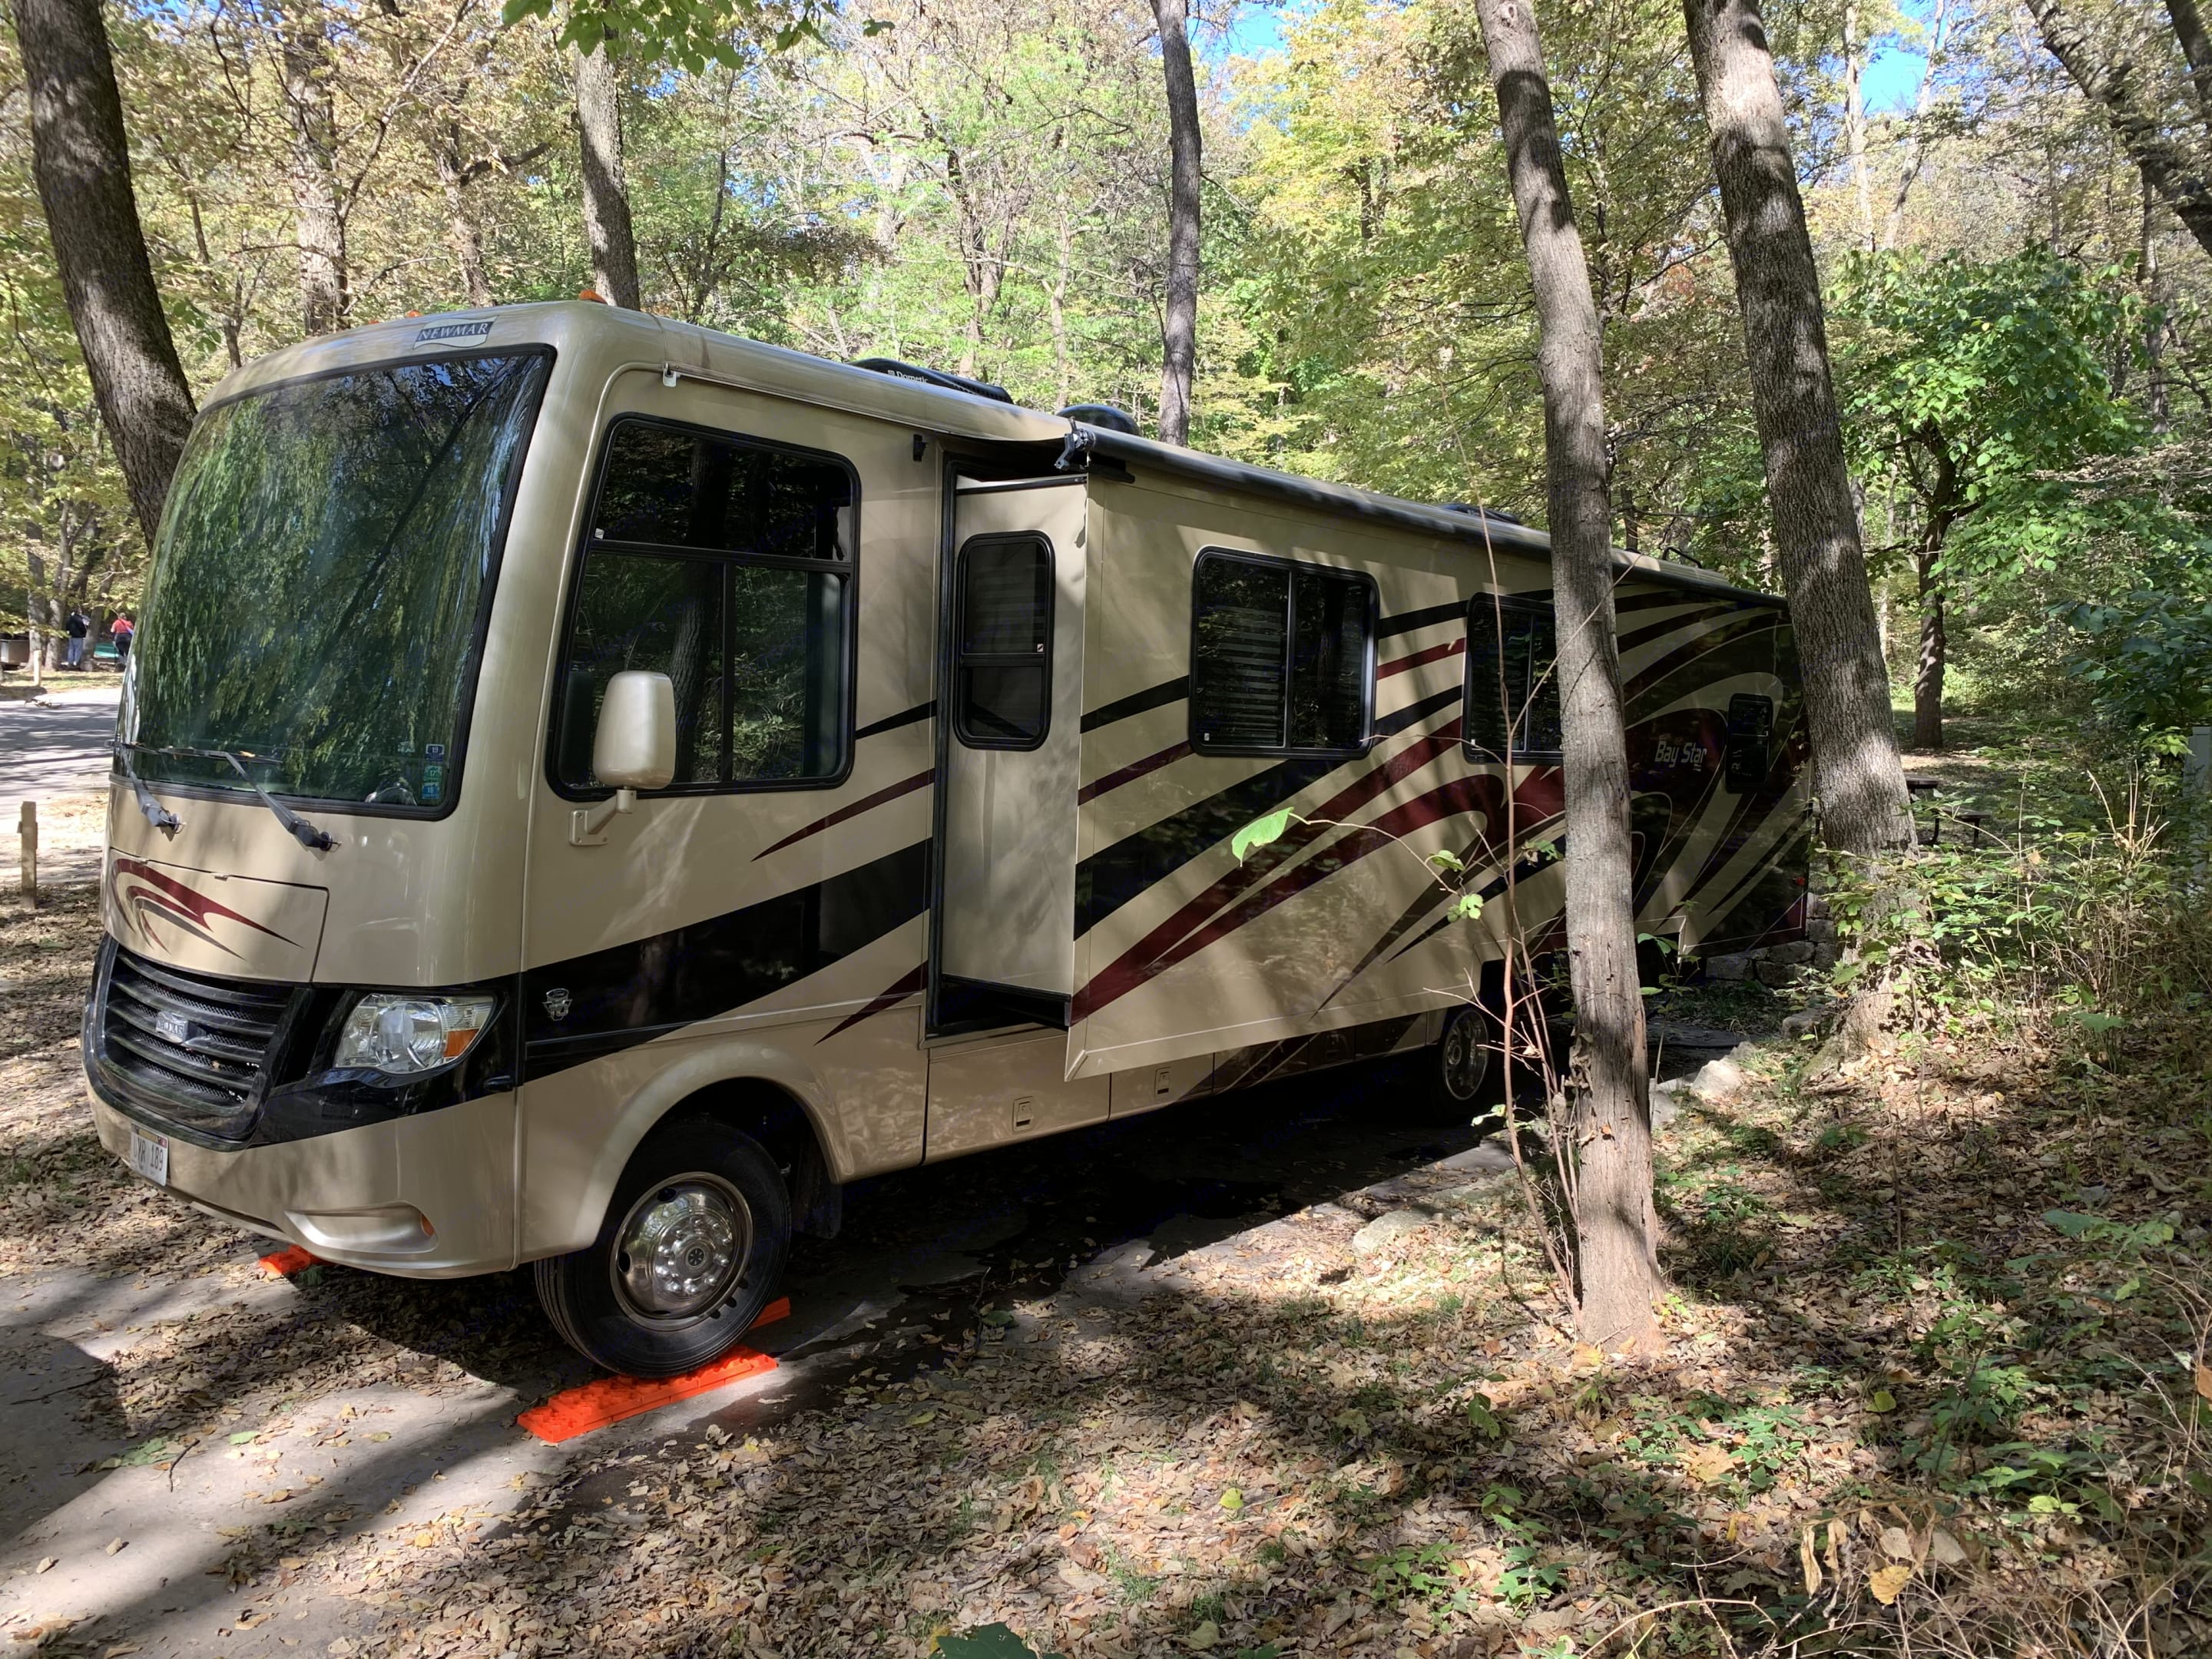 Fall 2019 at Indian Cave campground in SE Nebraska. Newmar Bay Star 2014